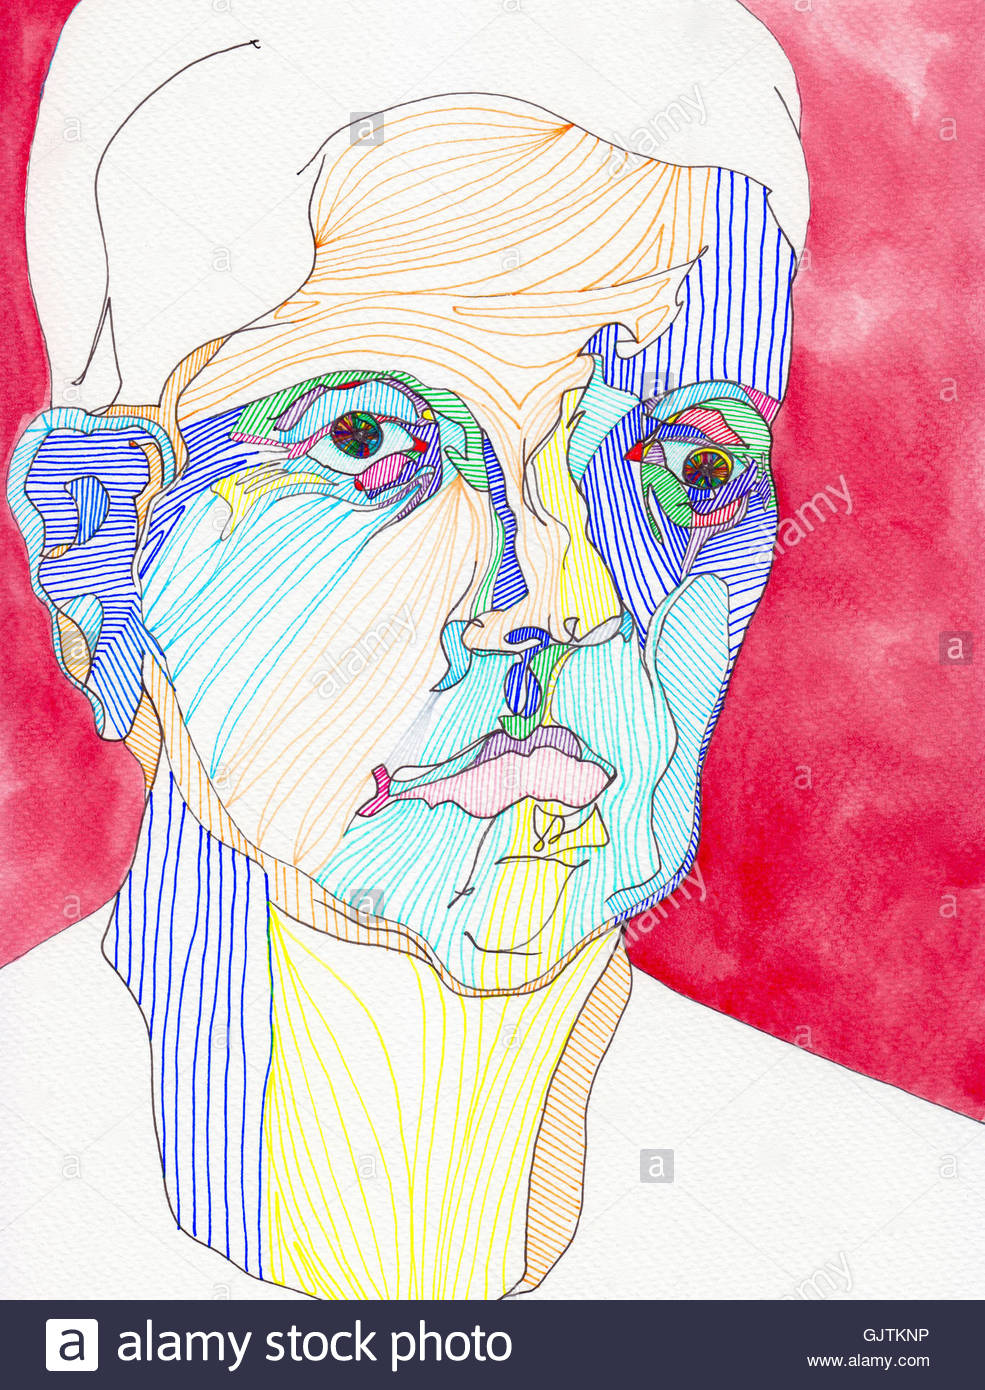 Multicolored line drawing portrait of serious man - Stock Image